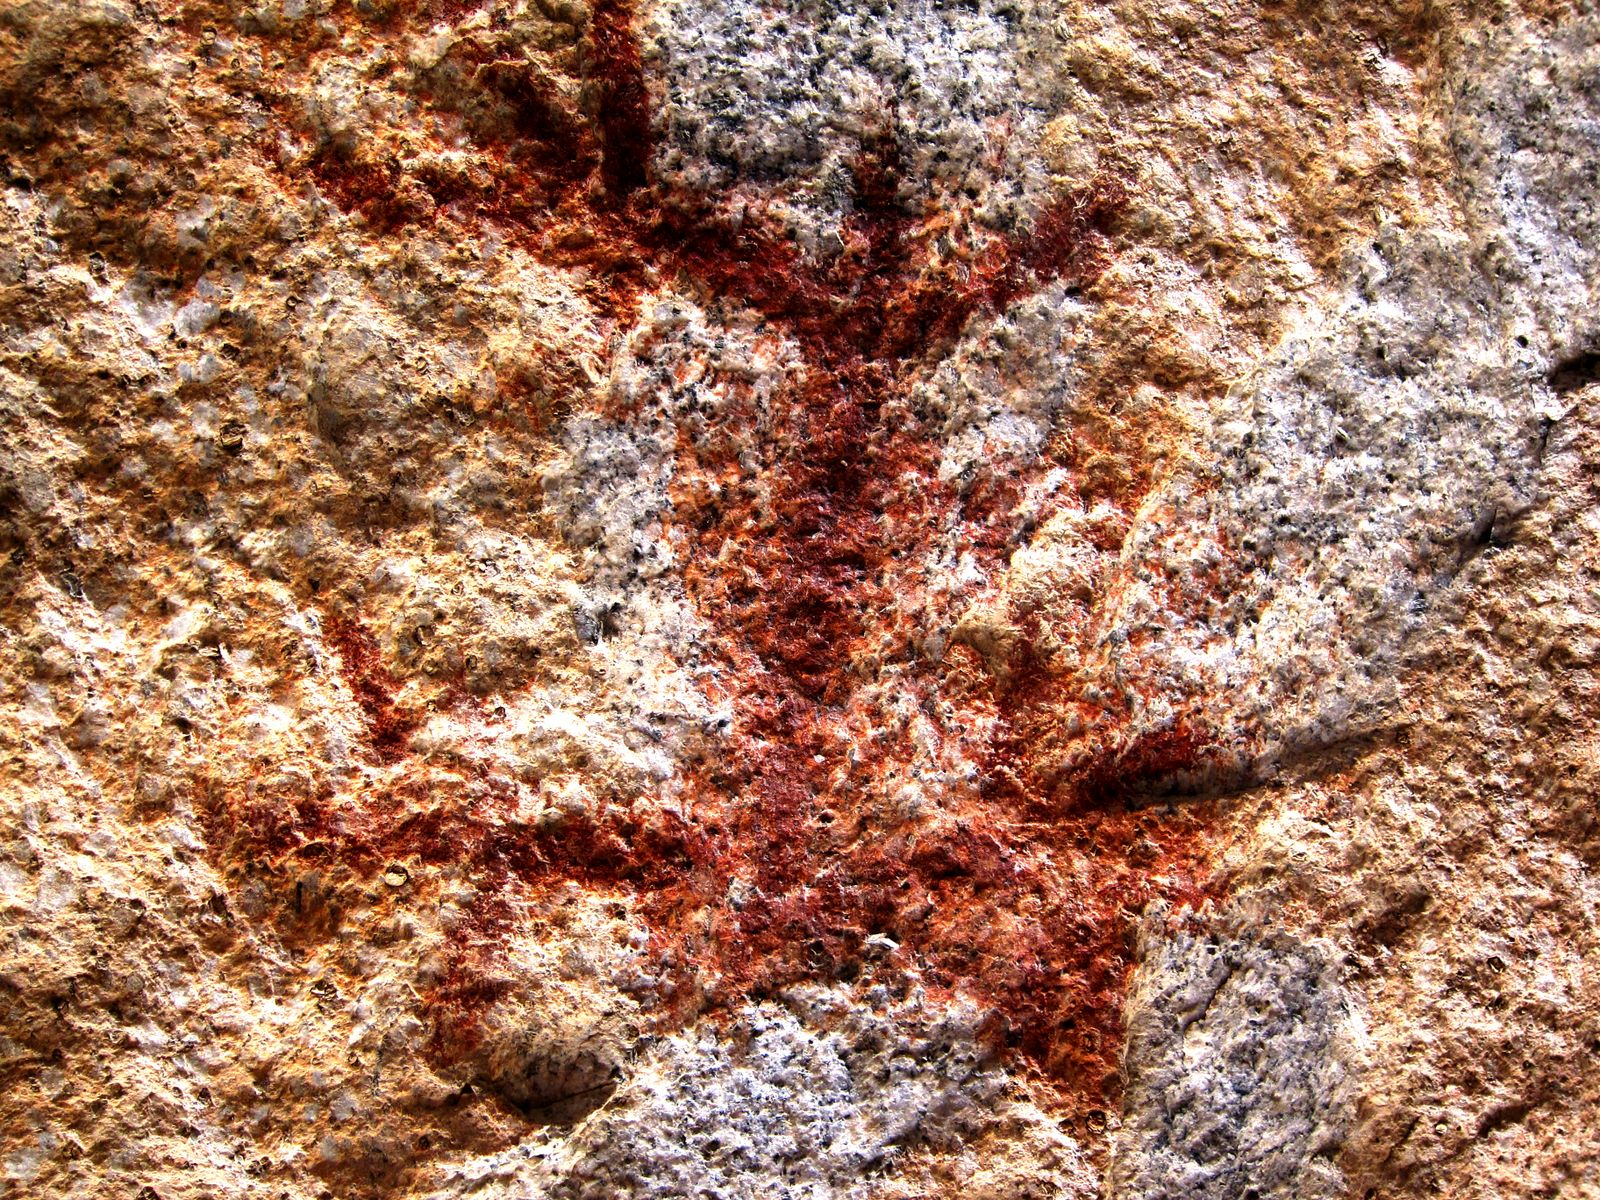 We were excited to find an antromorph pictograph near the rear of the cave,